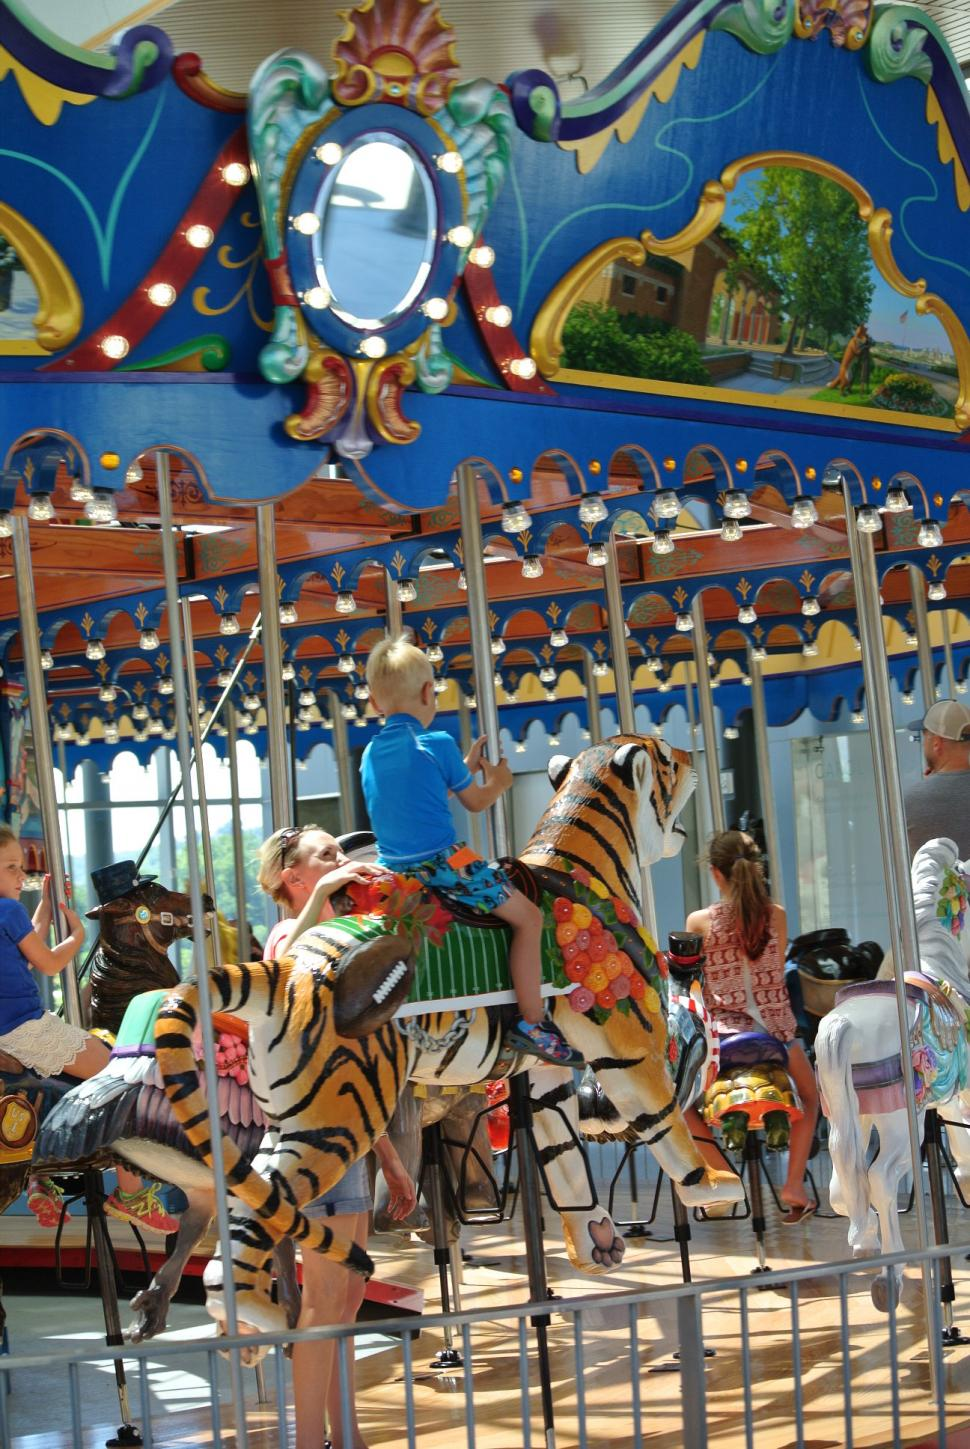 Carol Ann's Carousel at Smale Riverfront Park (photo: Laura Hoevener)